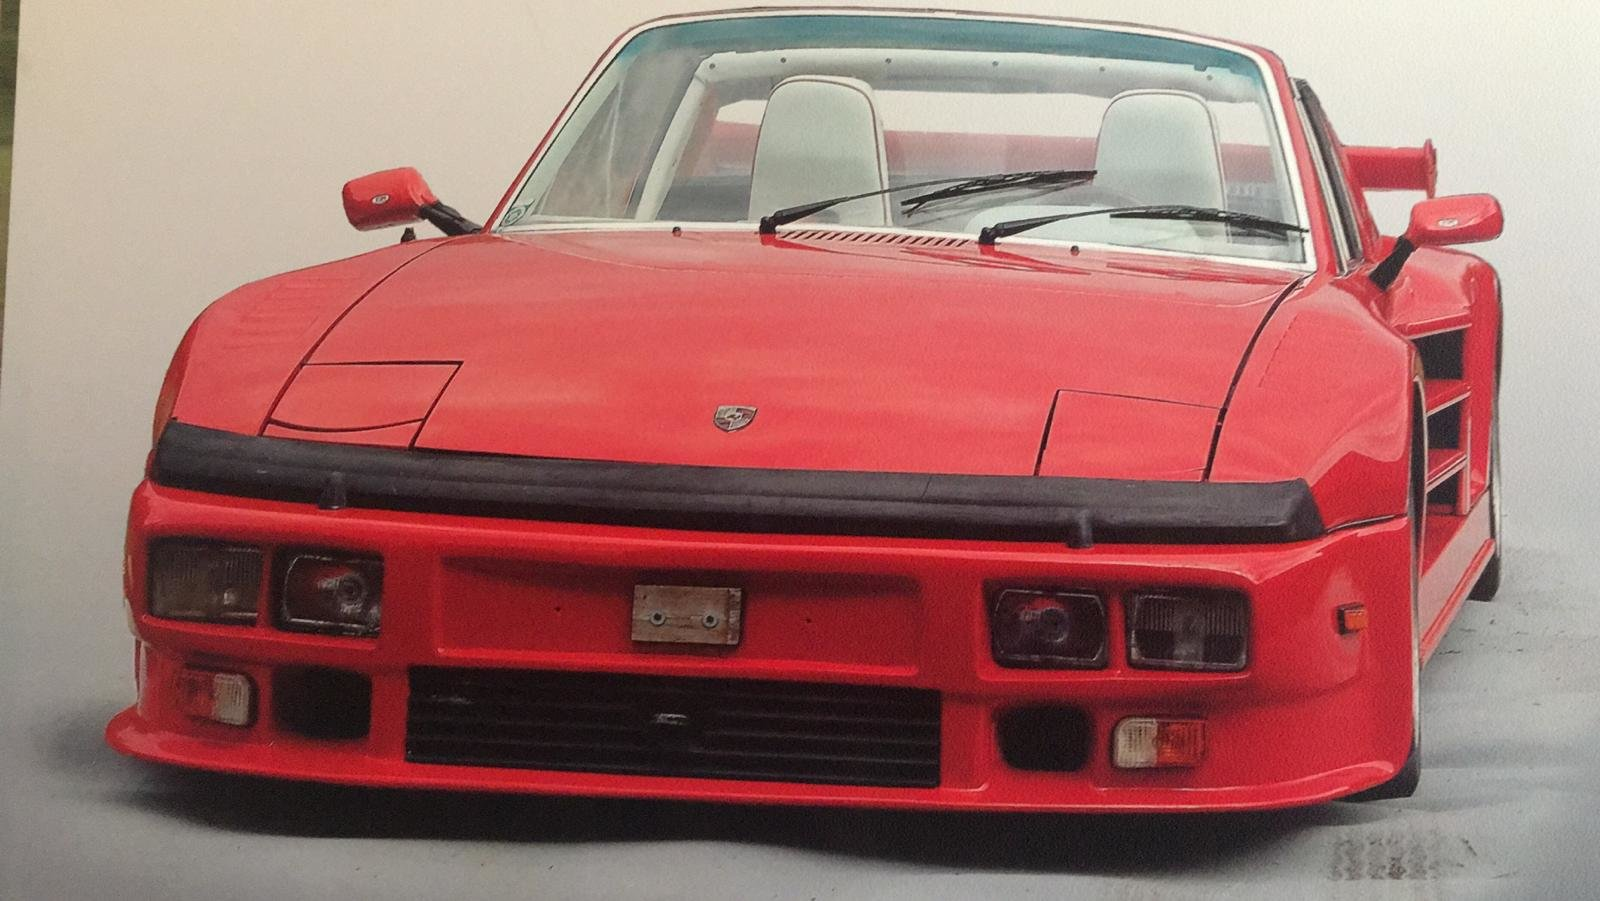 1975 1 OF 3 TUNED PORSCHE 914/6 2.0L - INSPIRED BY PIECH For Sale (picture 2 of 6)